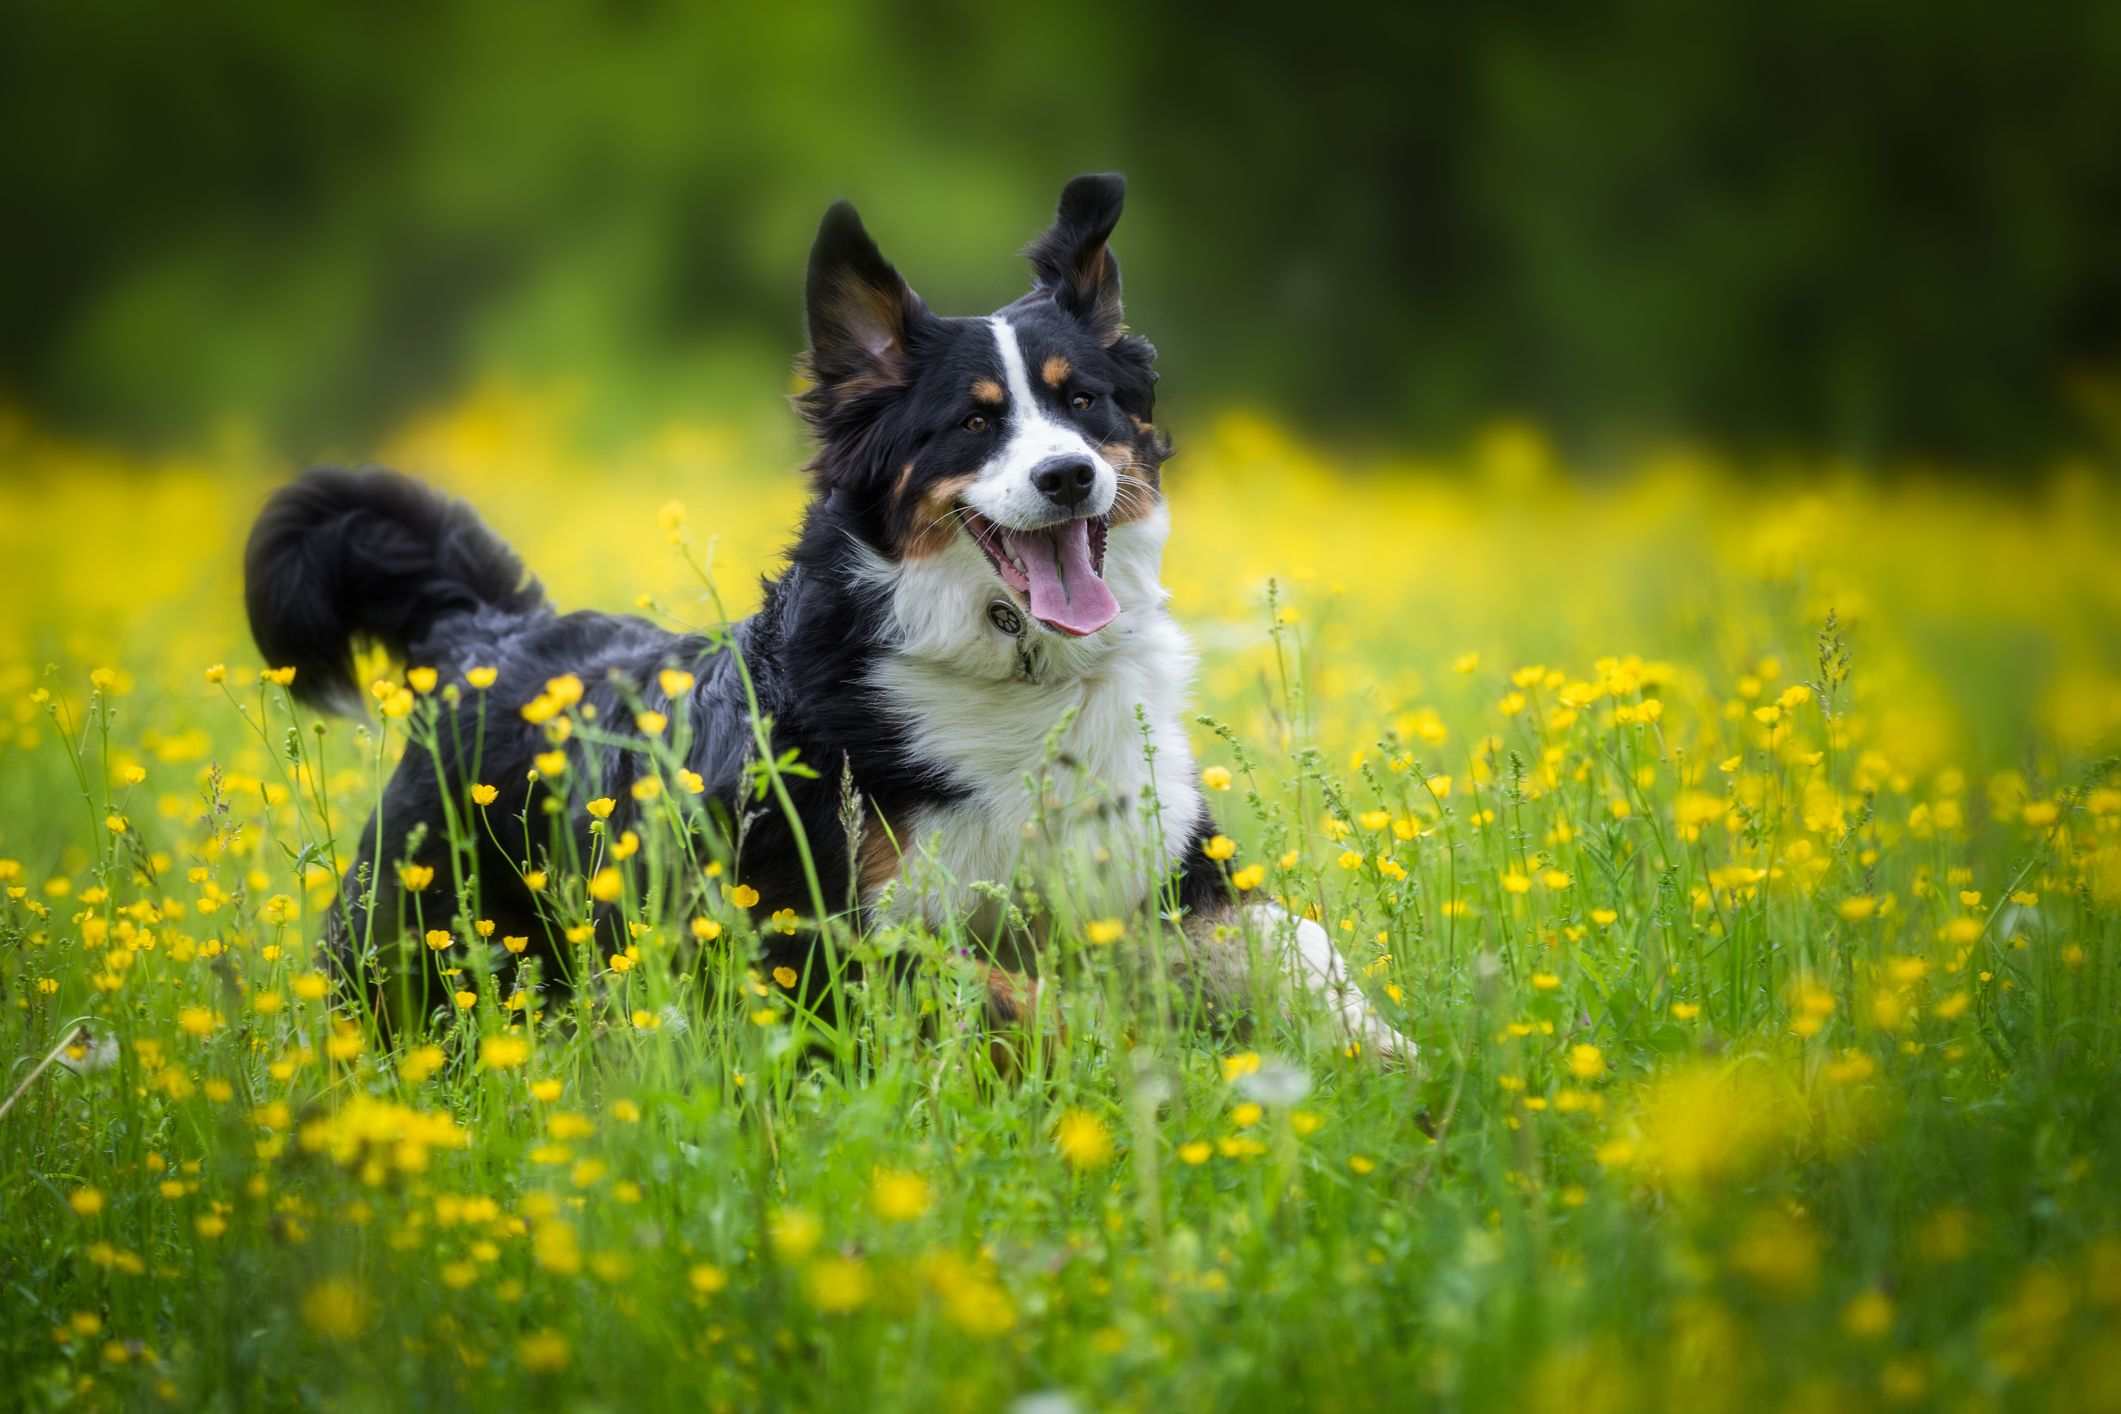 this is the smartest dog breed, according to a new study